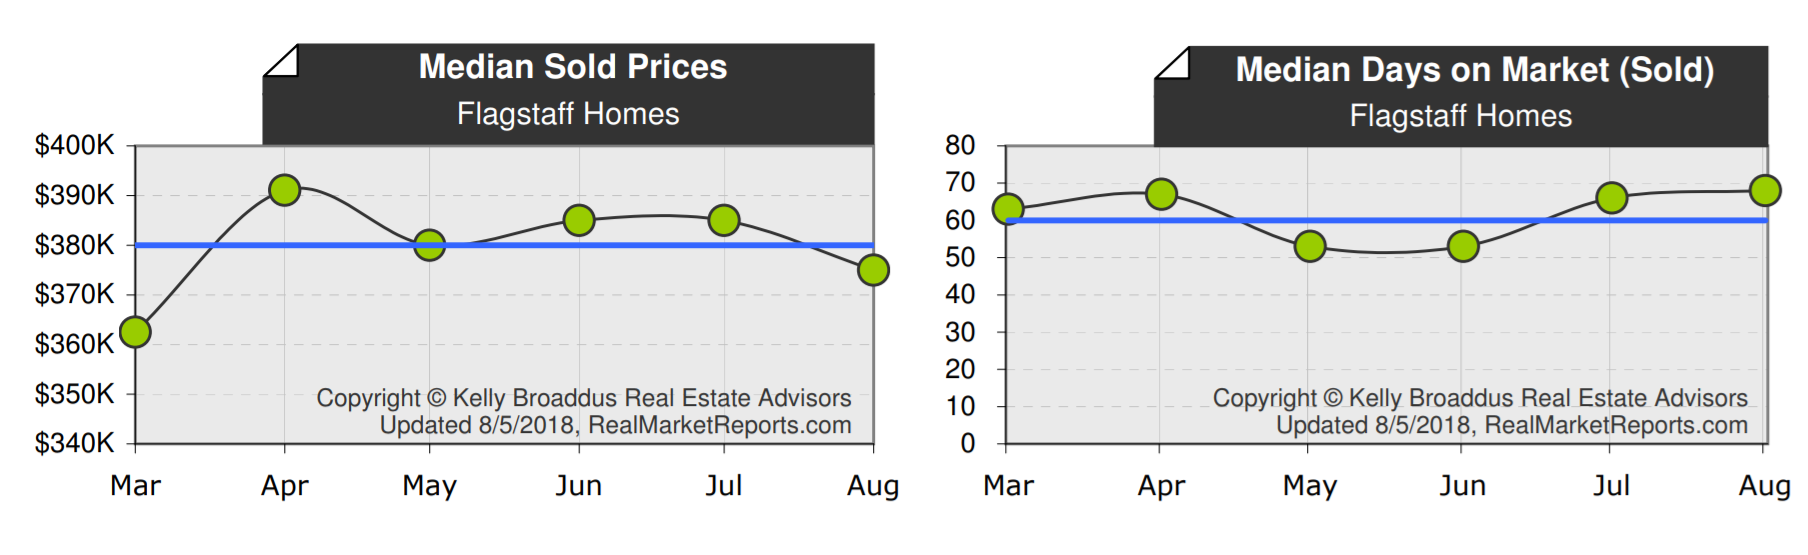 July 2018 Median Home Price Flagstaff AZ